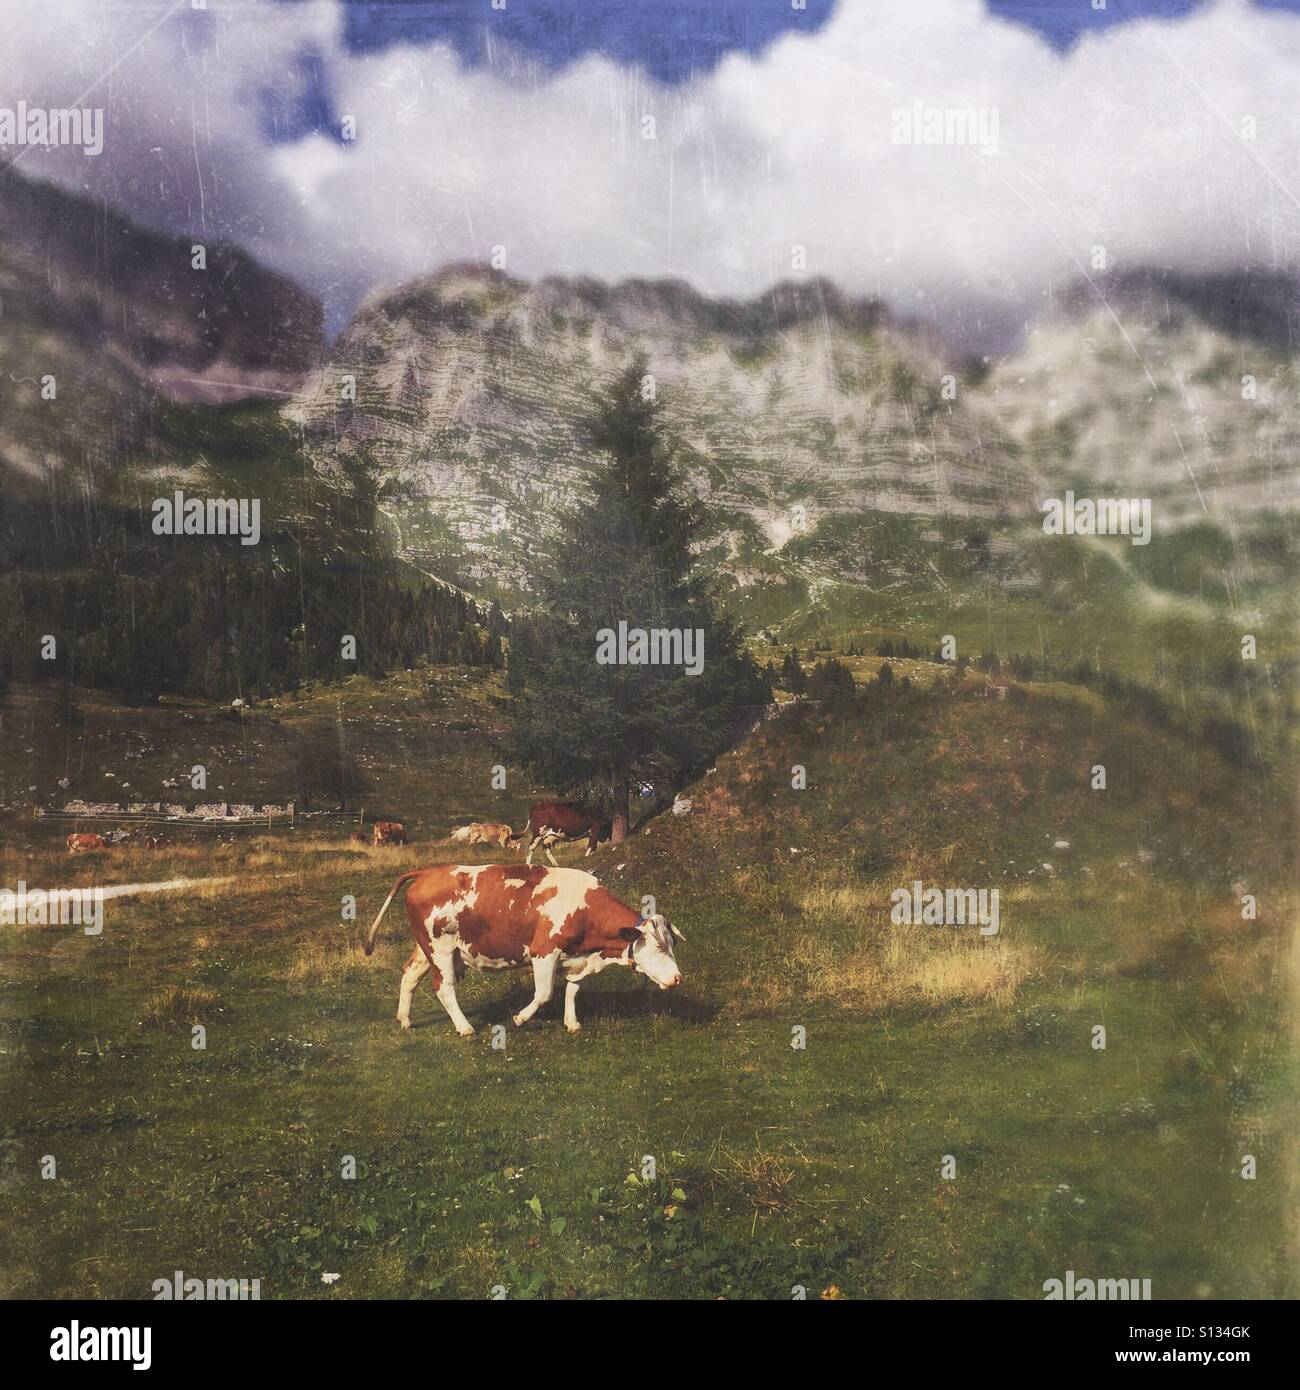 Cows on a meadow with mountains in the background (Pecol meadow, Julian Alps, Italy) - Stock Image